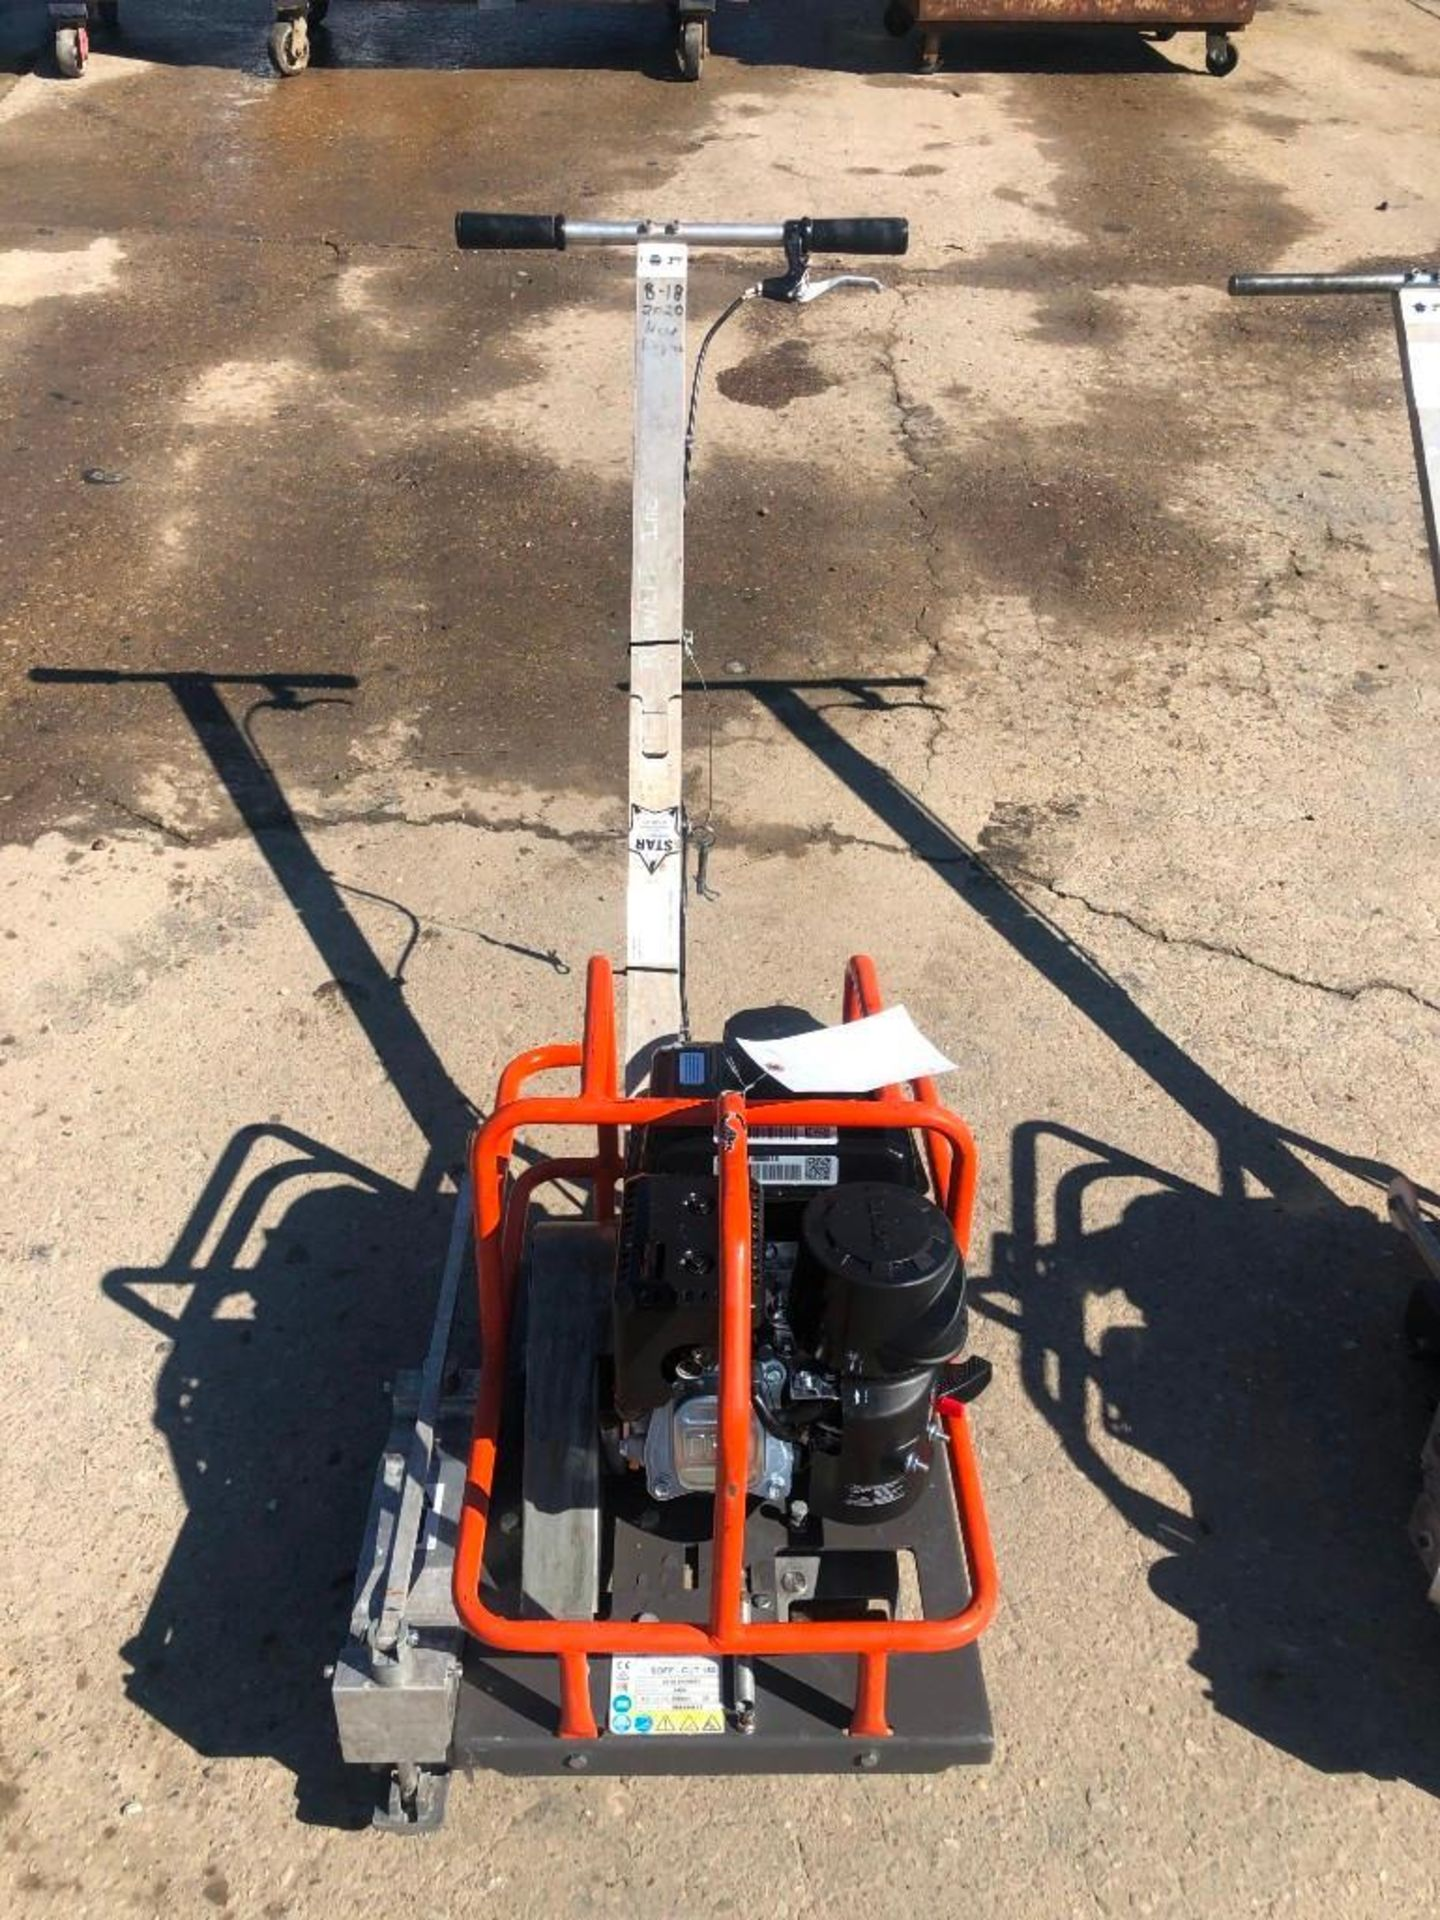 Lot 111 - Husqvarna Soff-Cut 150 Concrete Saw. Serial #20180400053. Located at 301 E Henry Street, Mt.